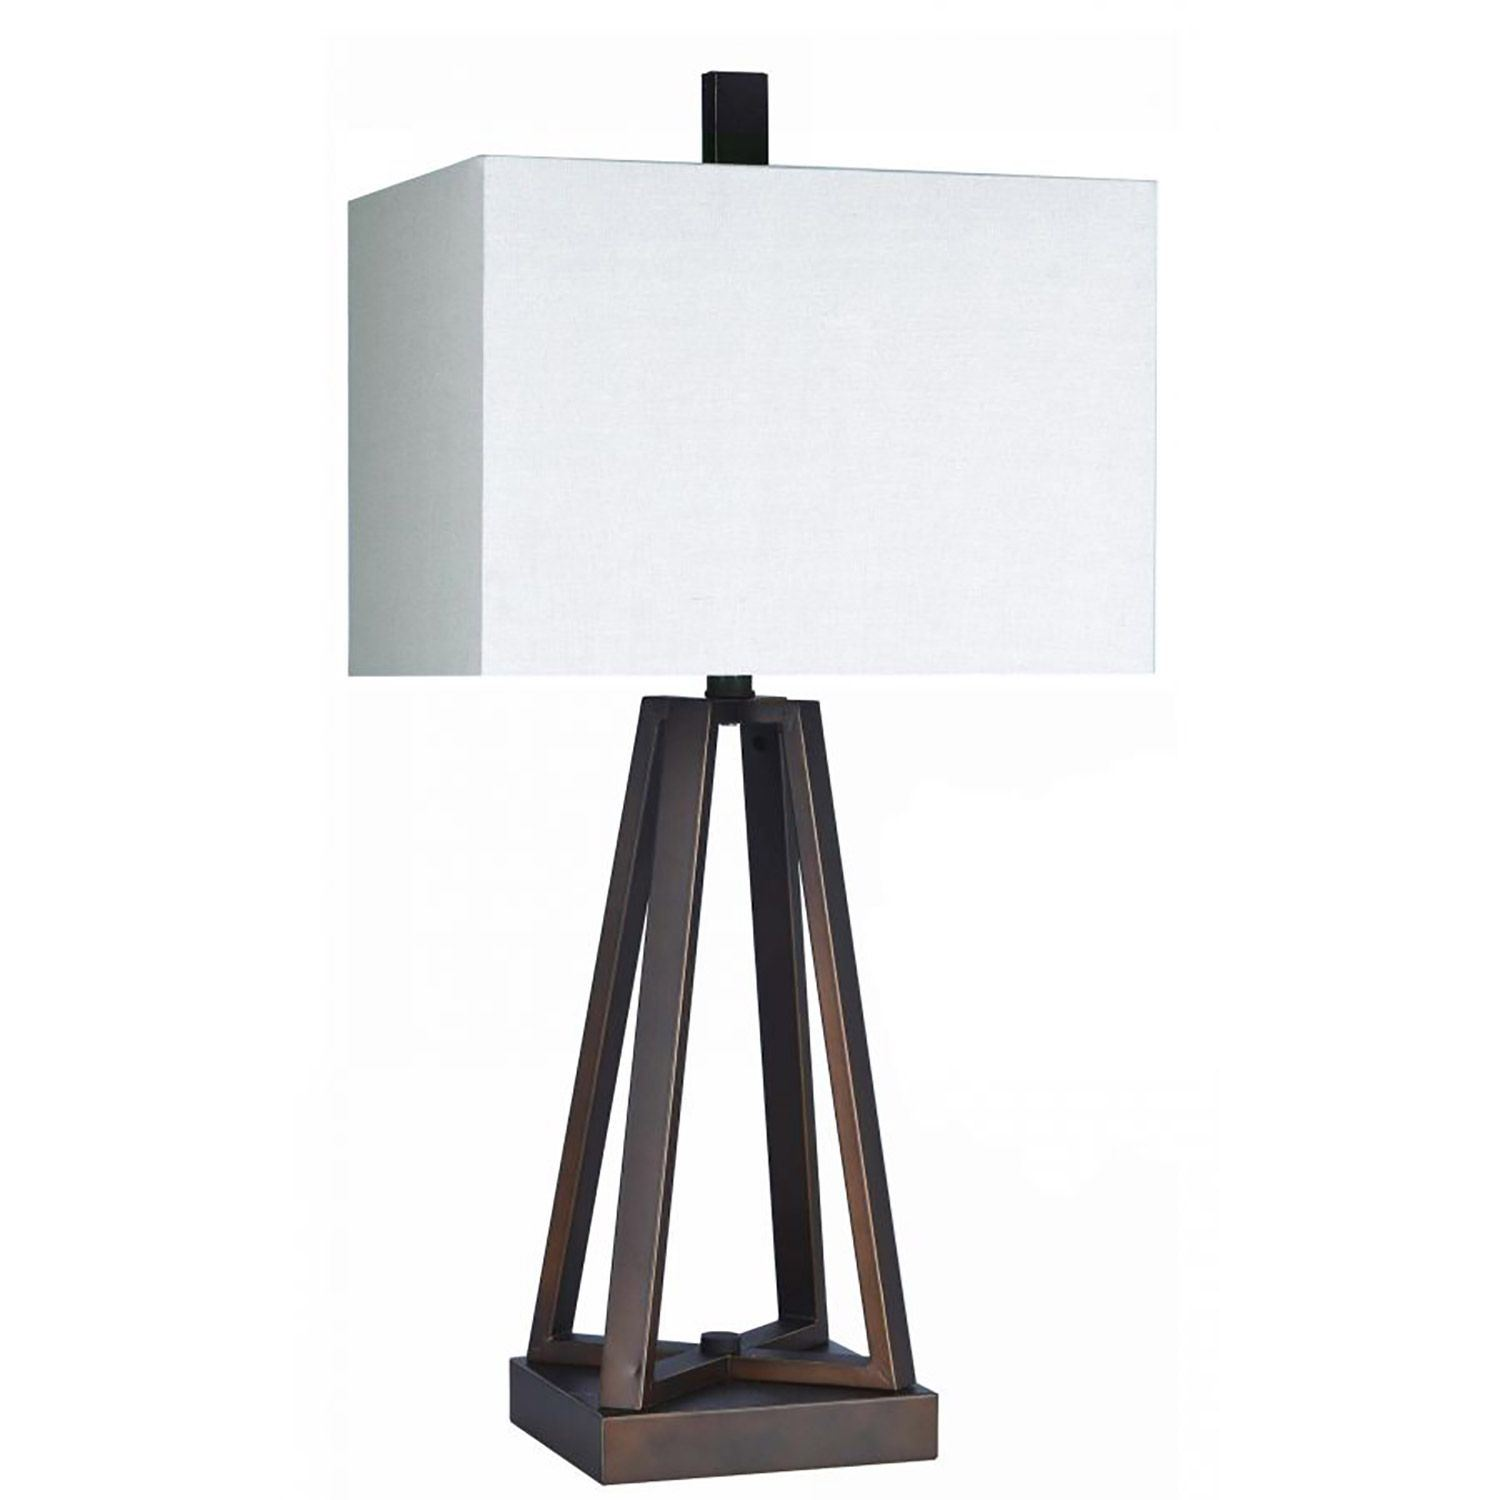 Bronze Architectural Table Lamp